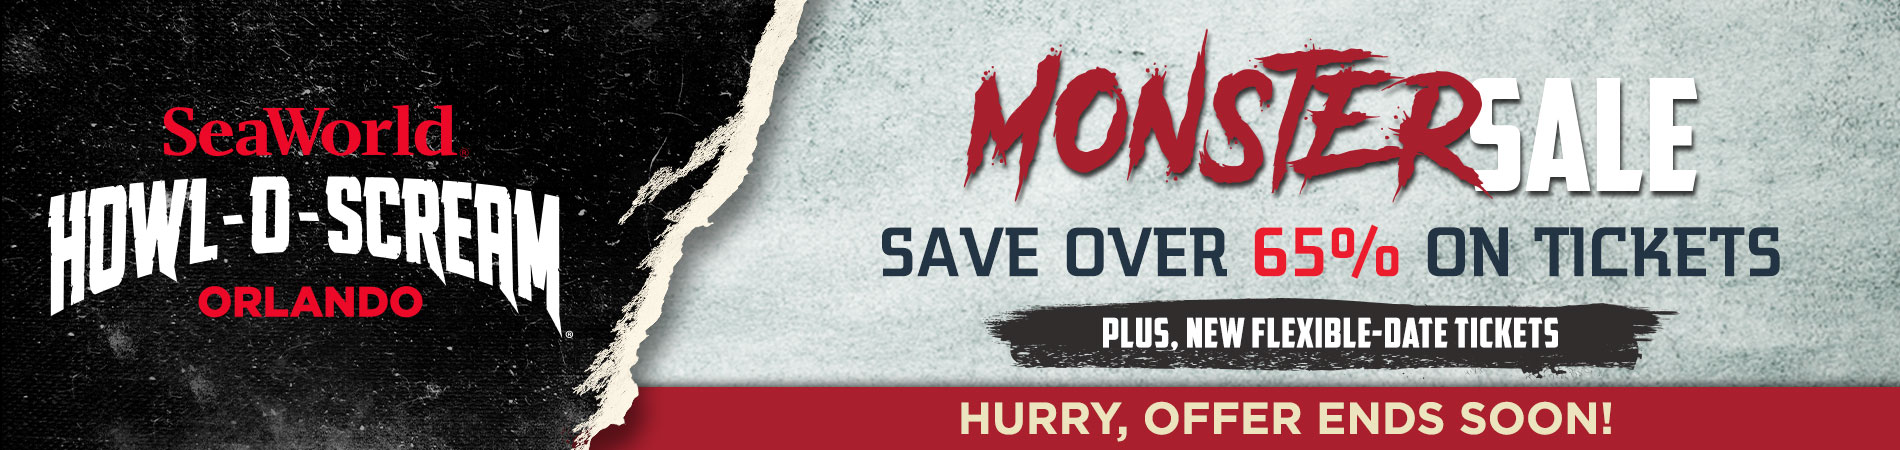 Monster Sale: Save up to 65% on Tickets